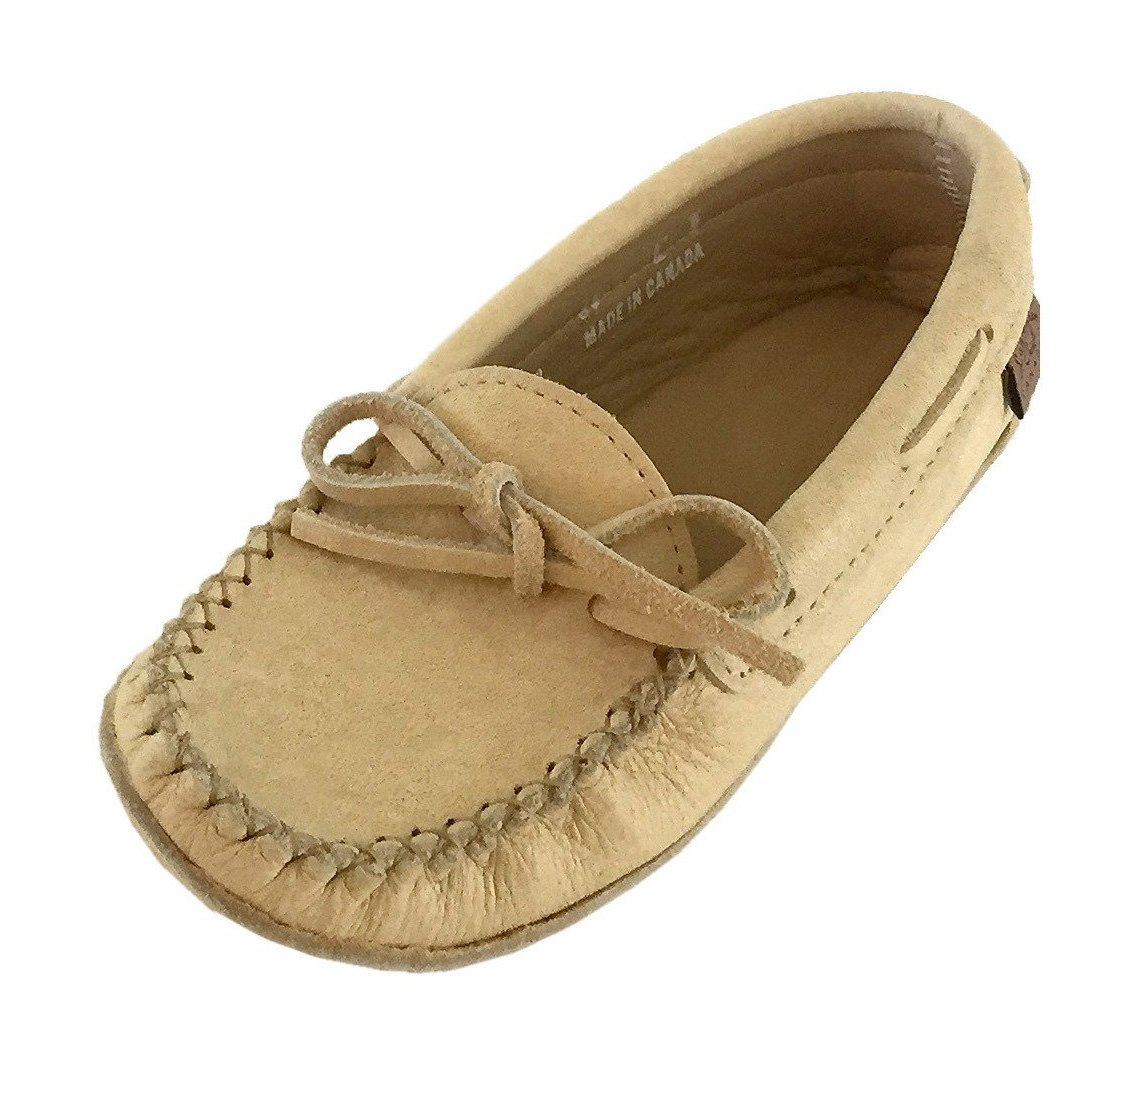 Laurentian Chief Women's Caribou Leather Moccasins (8)